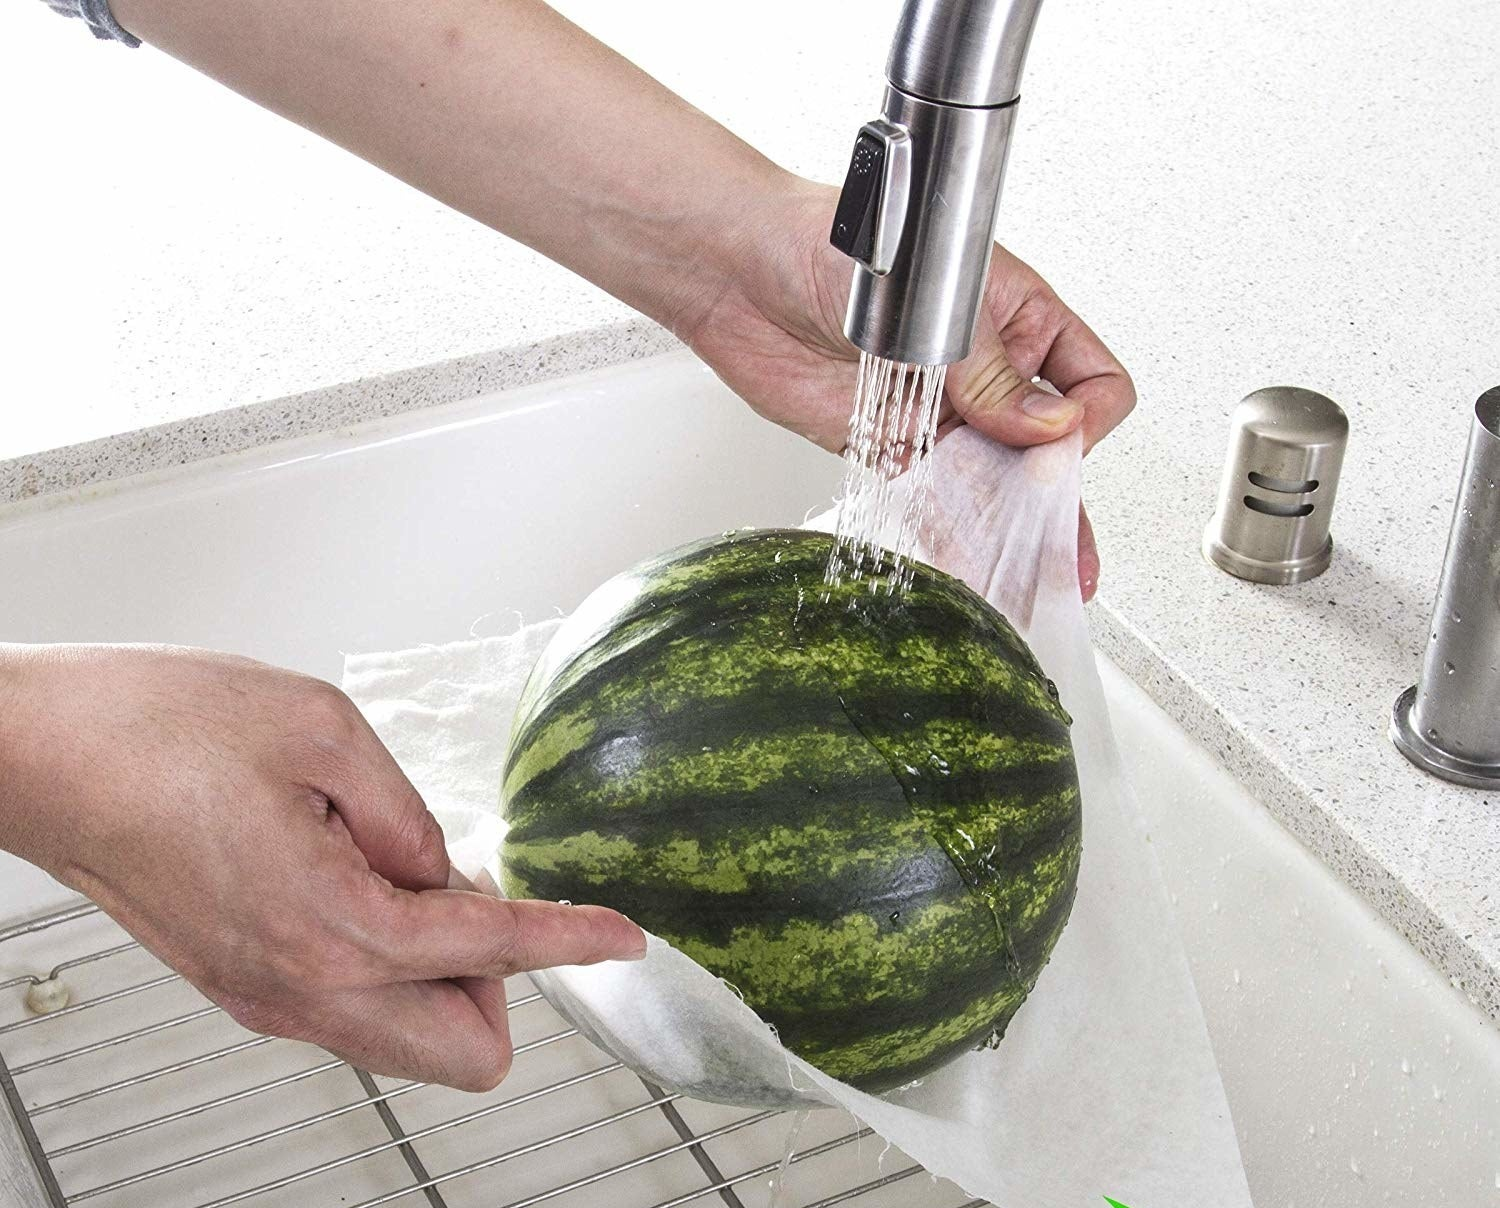 model holds a whole watermelon up under sink with paper towel